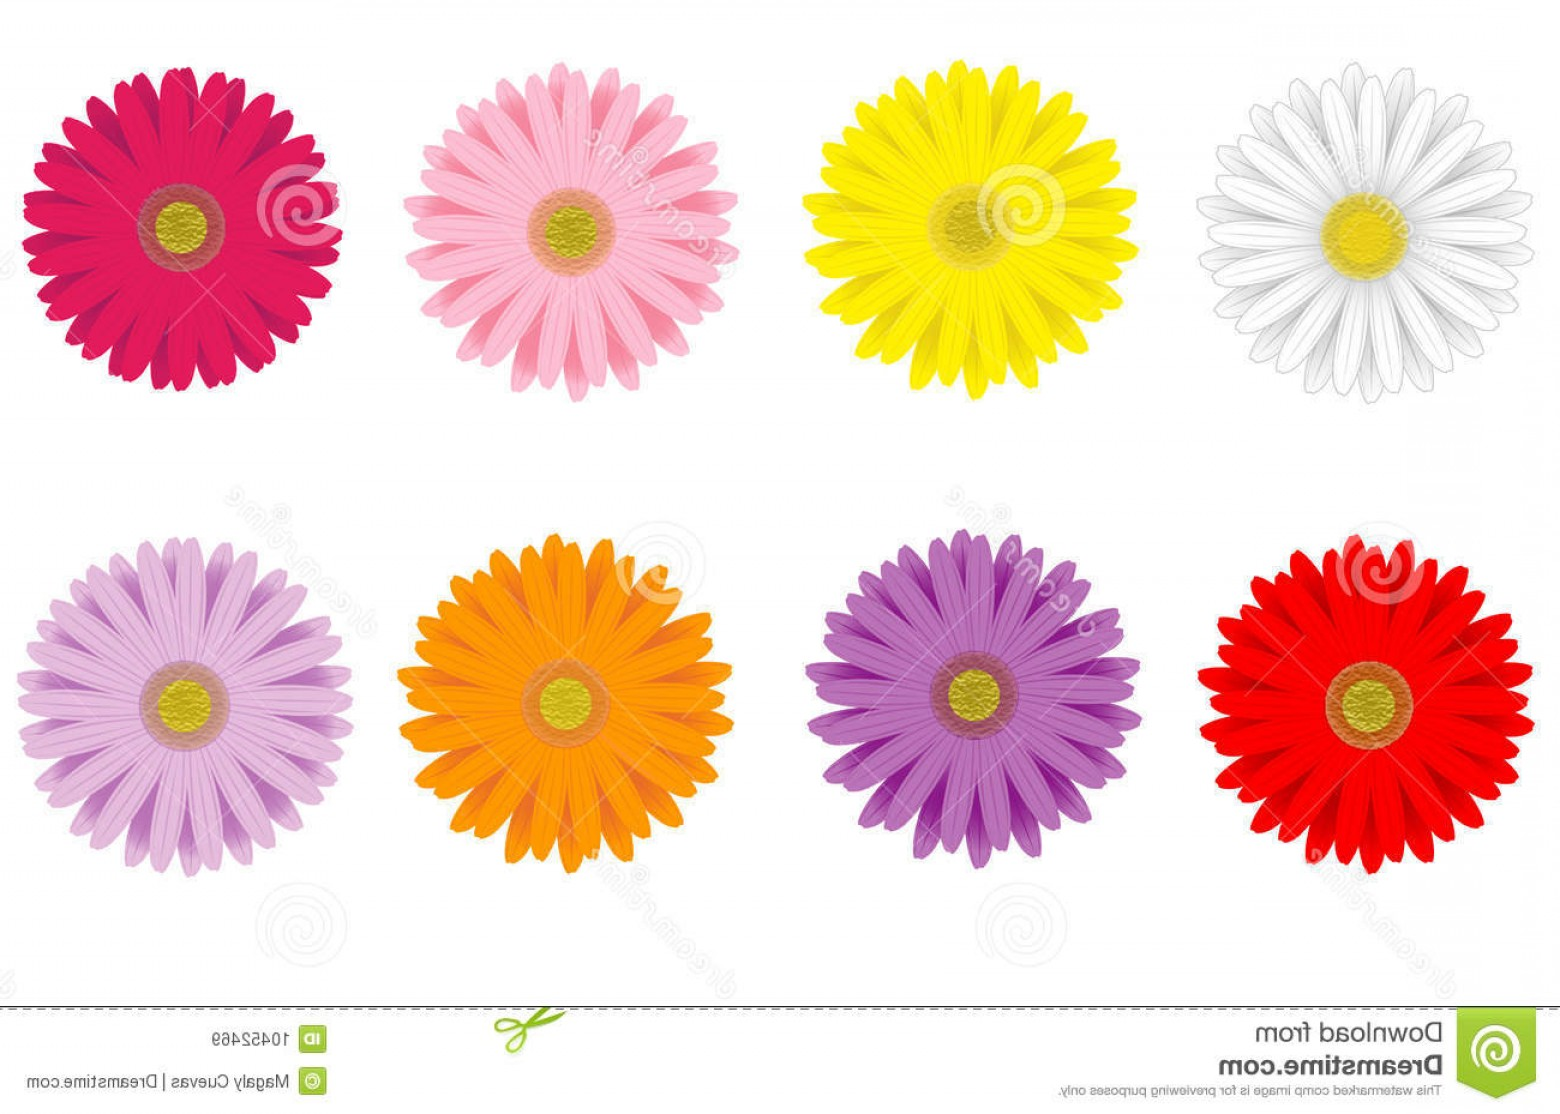 Purple Gerber Daisy Vector Framw: Royalty Free Stock Images Colorful Gerbera Daisies Image